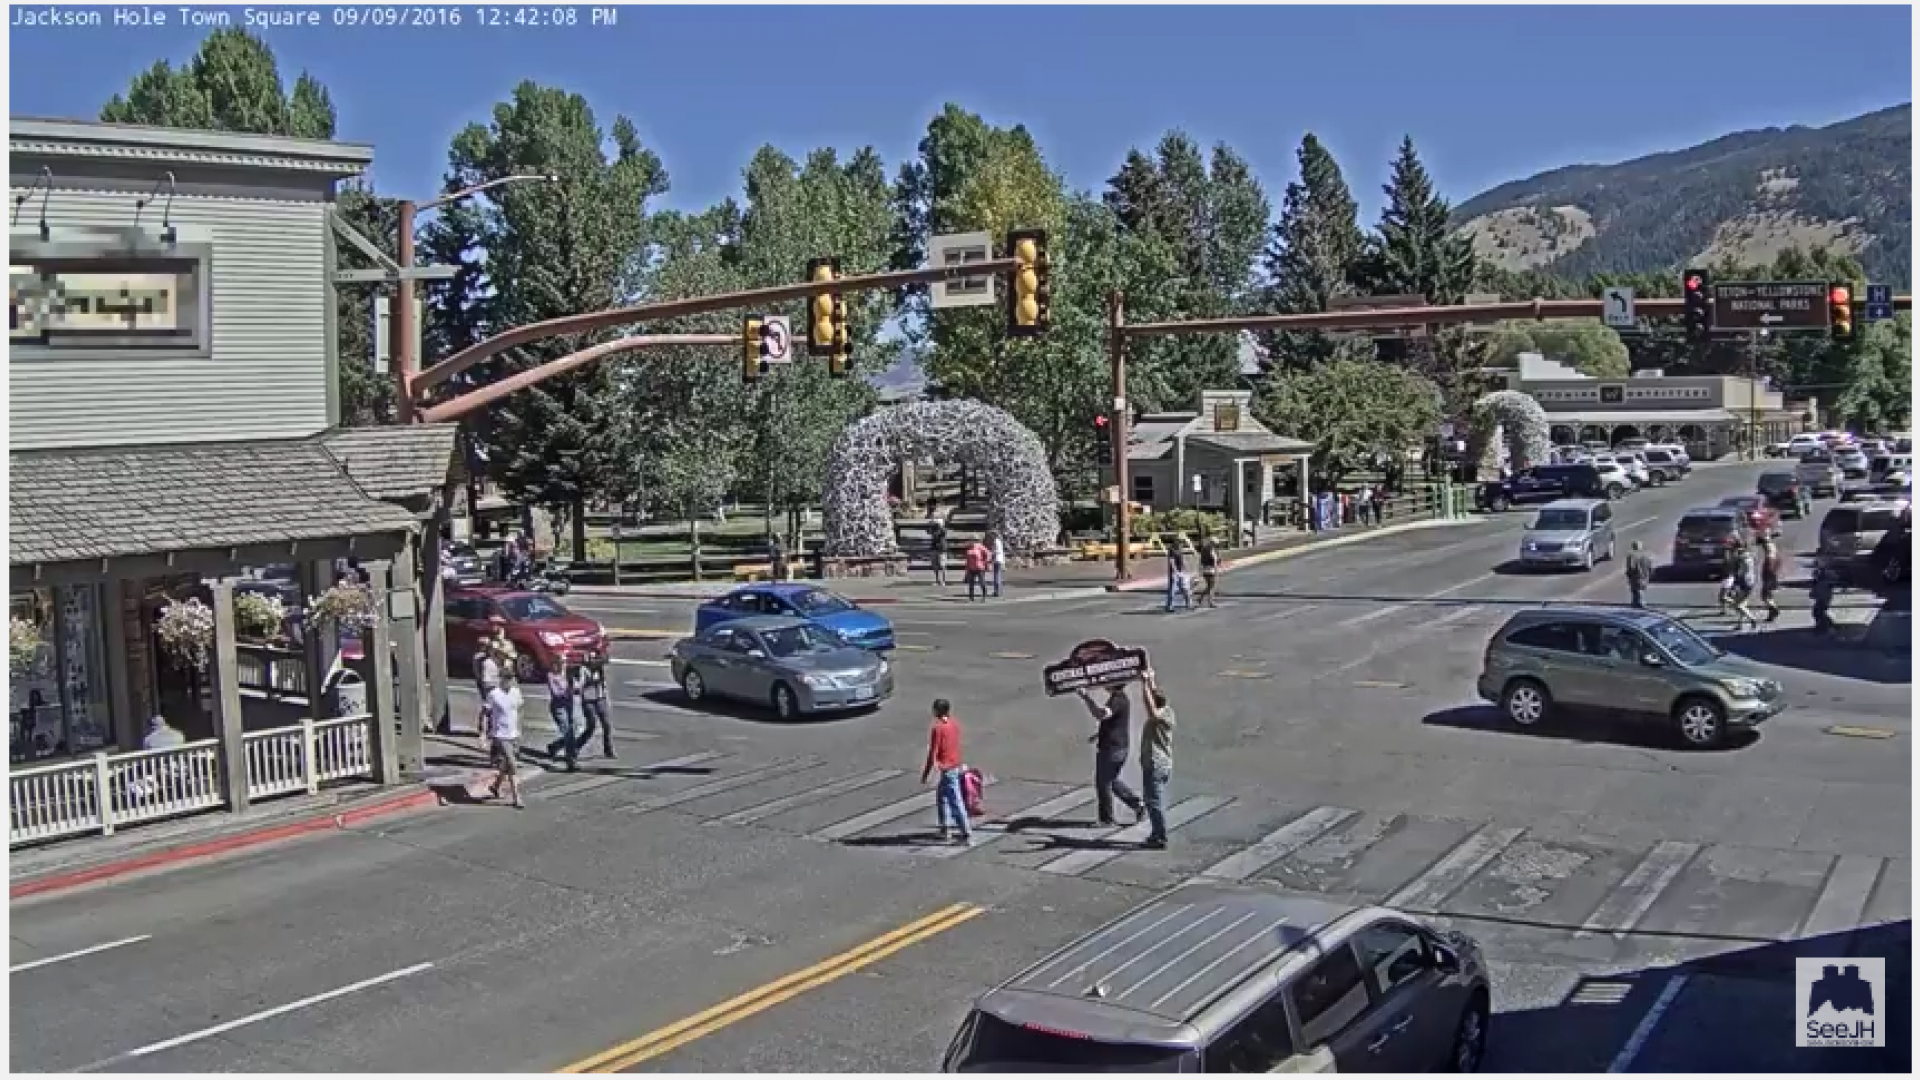 Have You Seen The Jackson Hole Town Square Web Cam